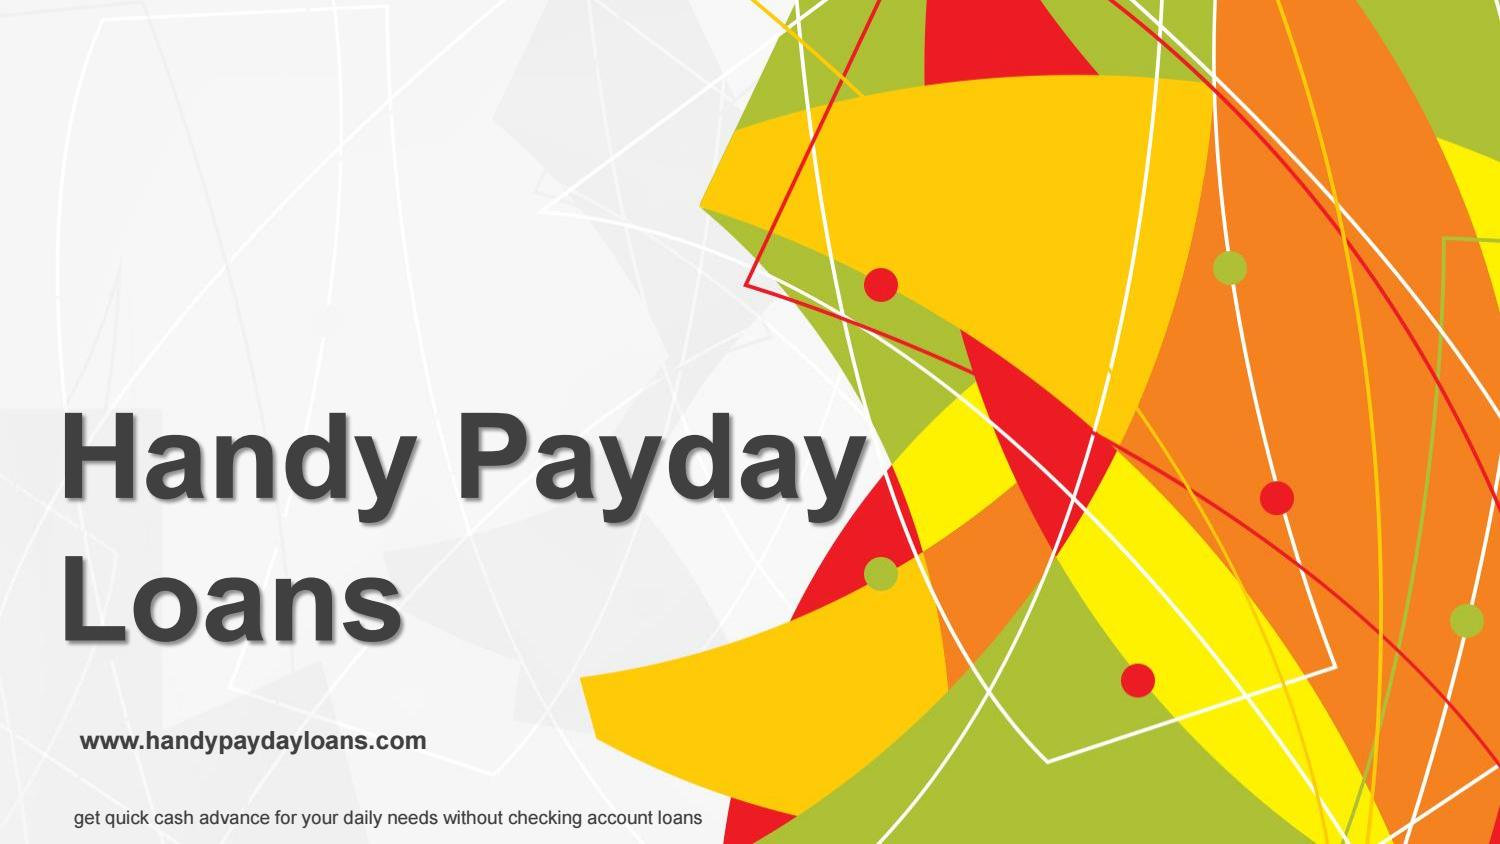 Loans Without Checking Account >> Payday Loans No Checking Account Loans Www Handypaydayloans